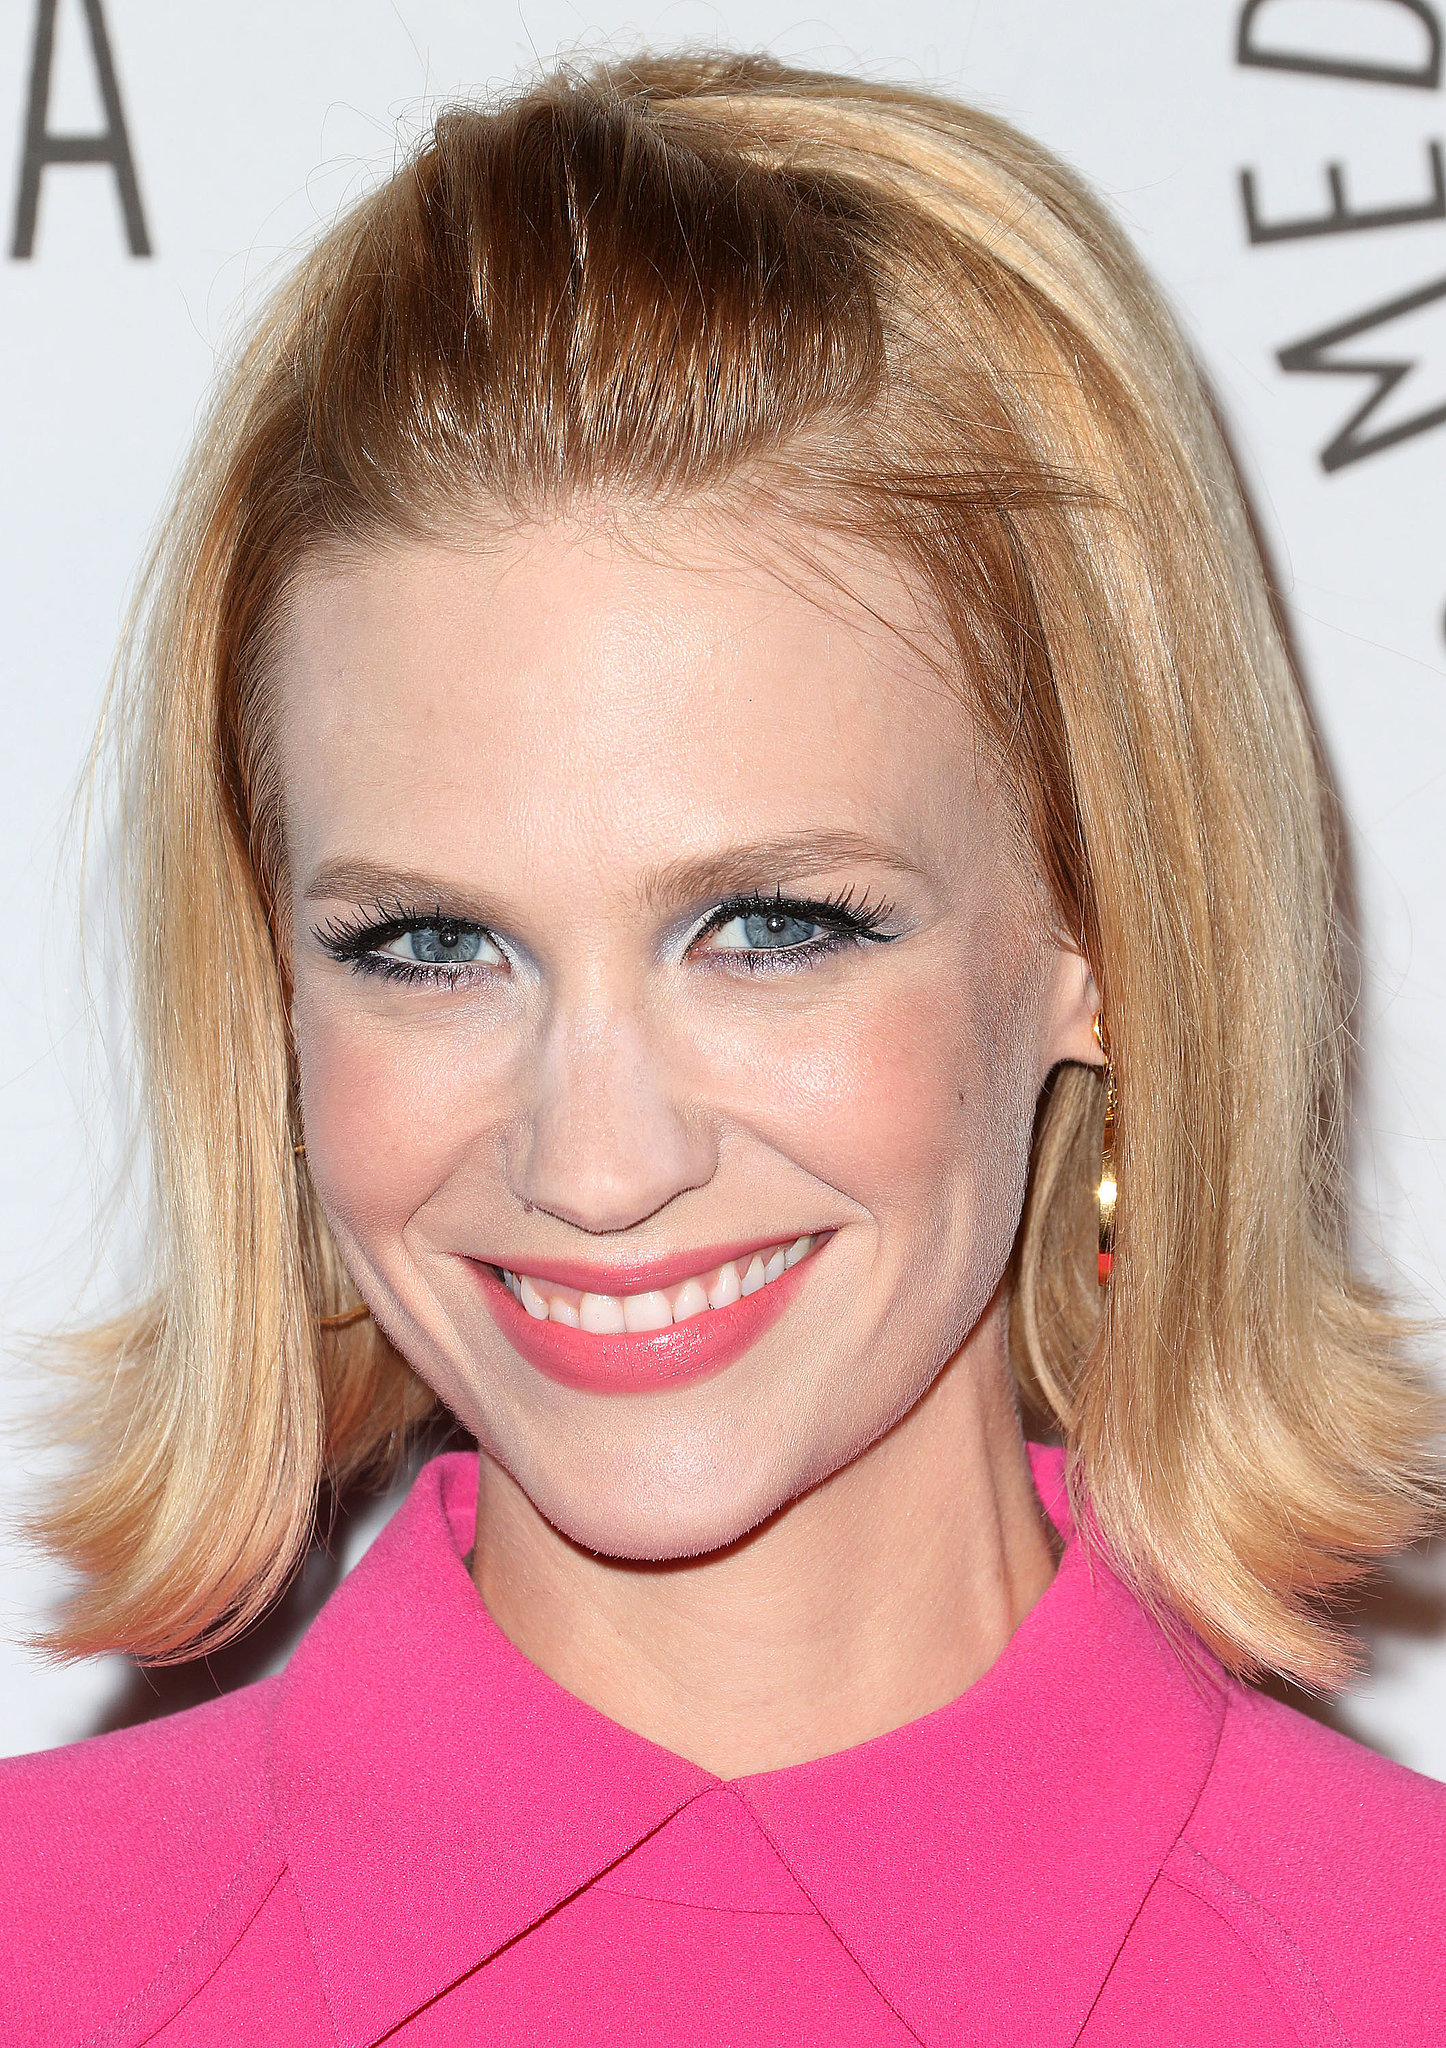 January arrived at a Los Angeles benefit in October of last year wearing a bright pink minidress that had a retro feel. And to complement her outfit, she went for a '60s vibe with her hair and makeup. Betty Francis would certainly approve.